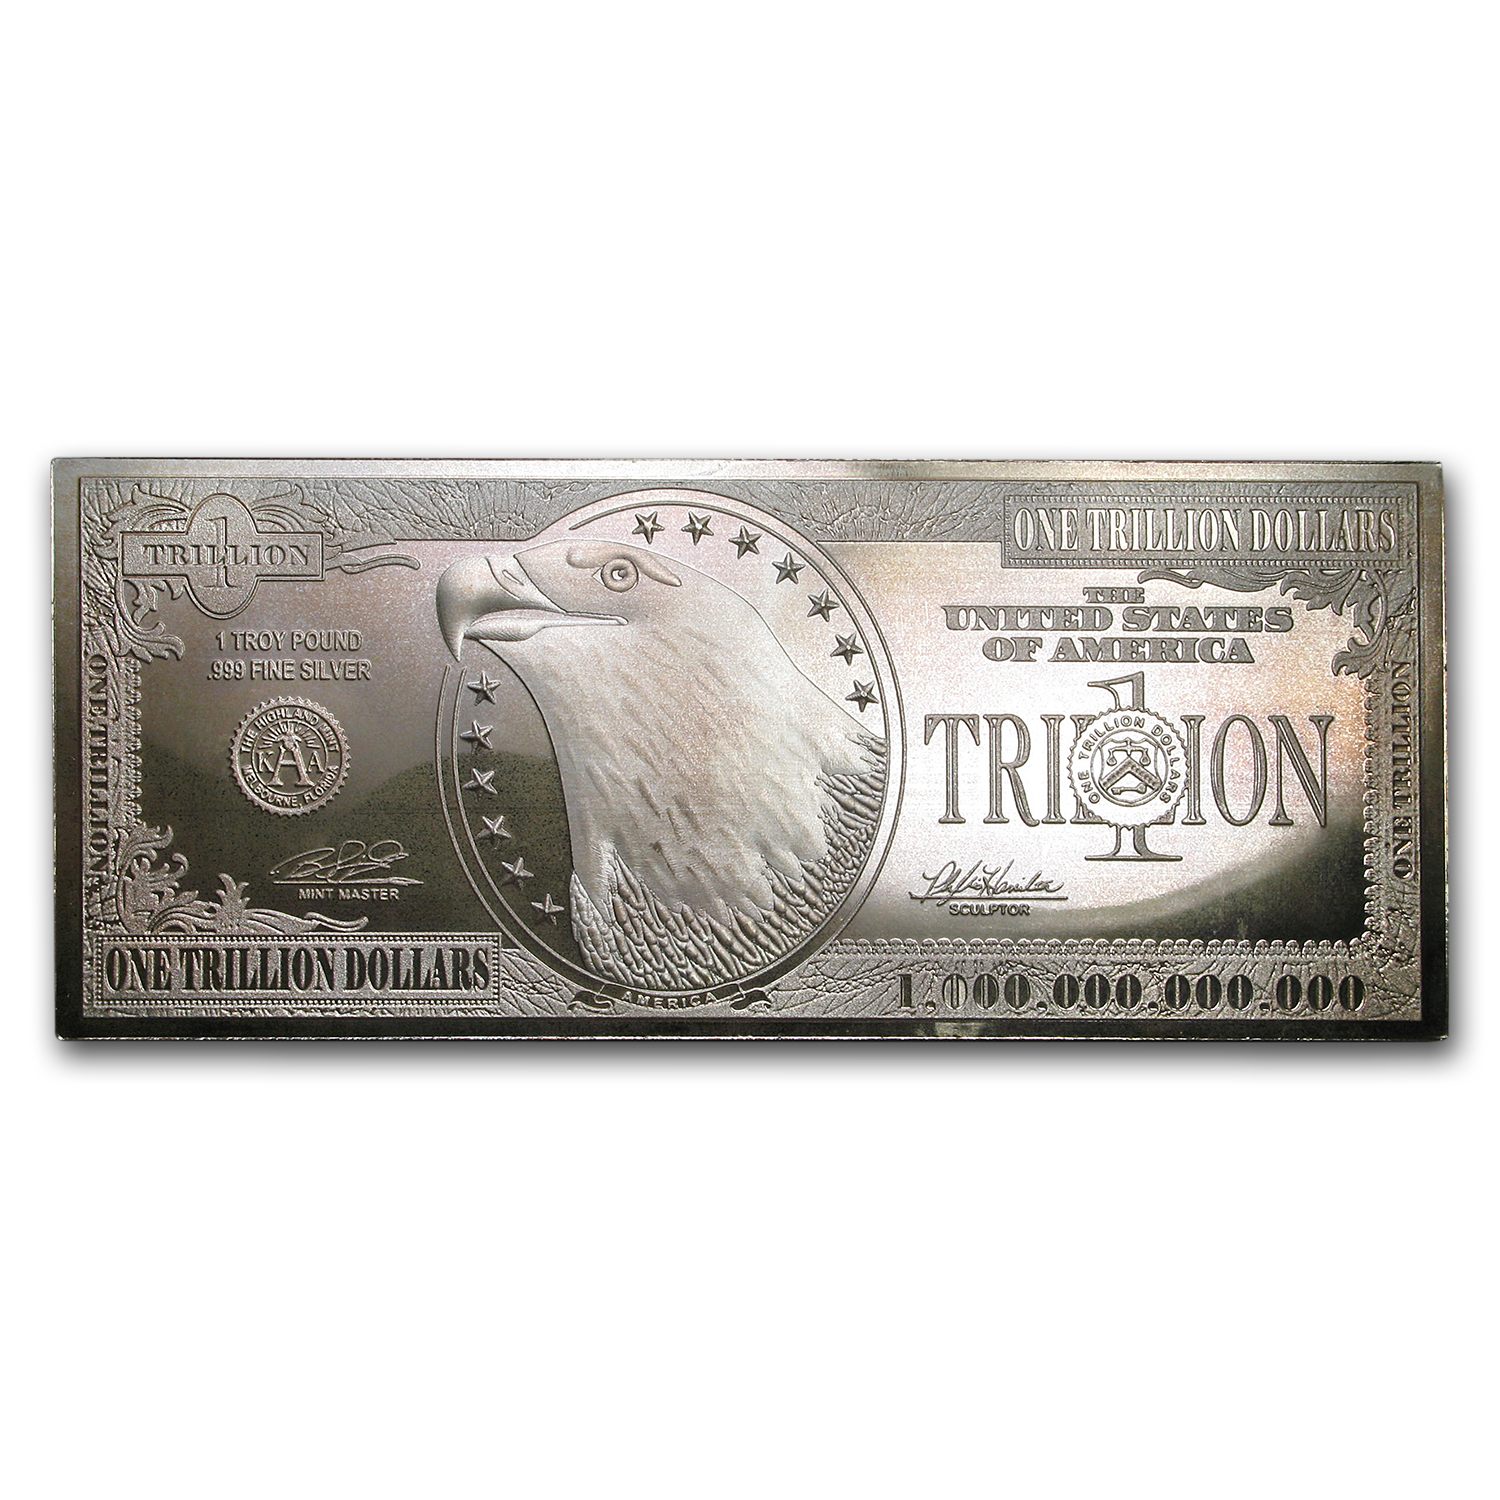 12 Oz Silver Bar 1 000 000 000 000 Bill Us Currency